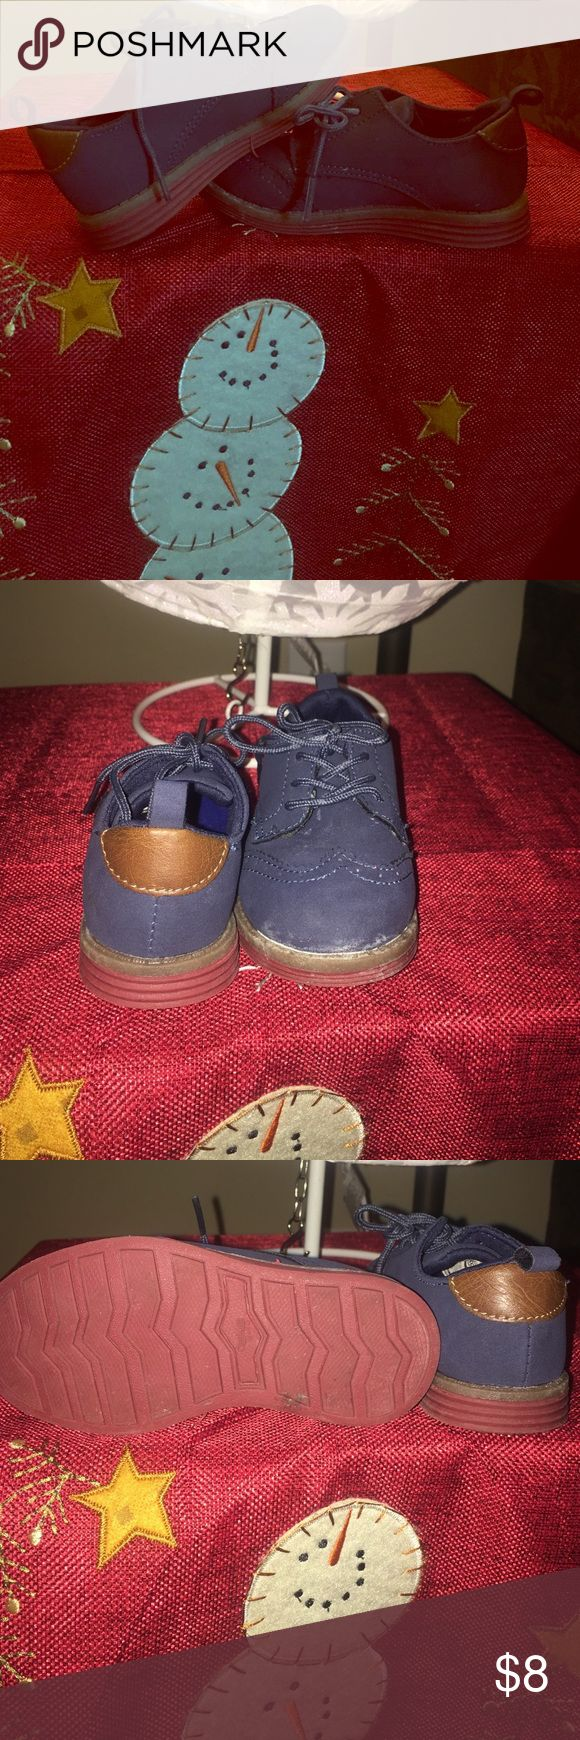 Osh Kosh oxford size 7c navy Great holiday oxfords navy blue size 7c in good boys' used condition Osh Kosh Shoes Dress Shoes